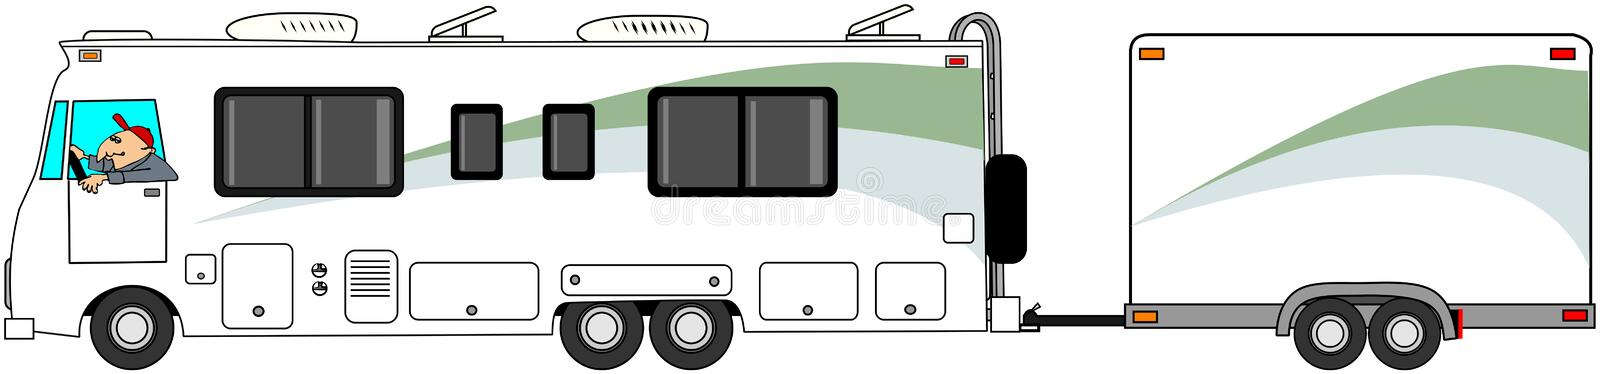 Motorhome Towing Cargo Trailer Stock Illustration